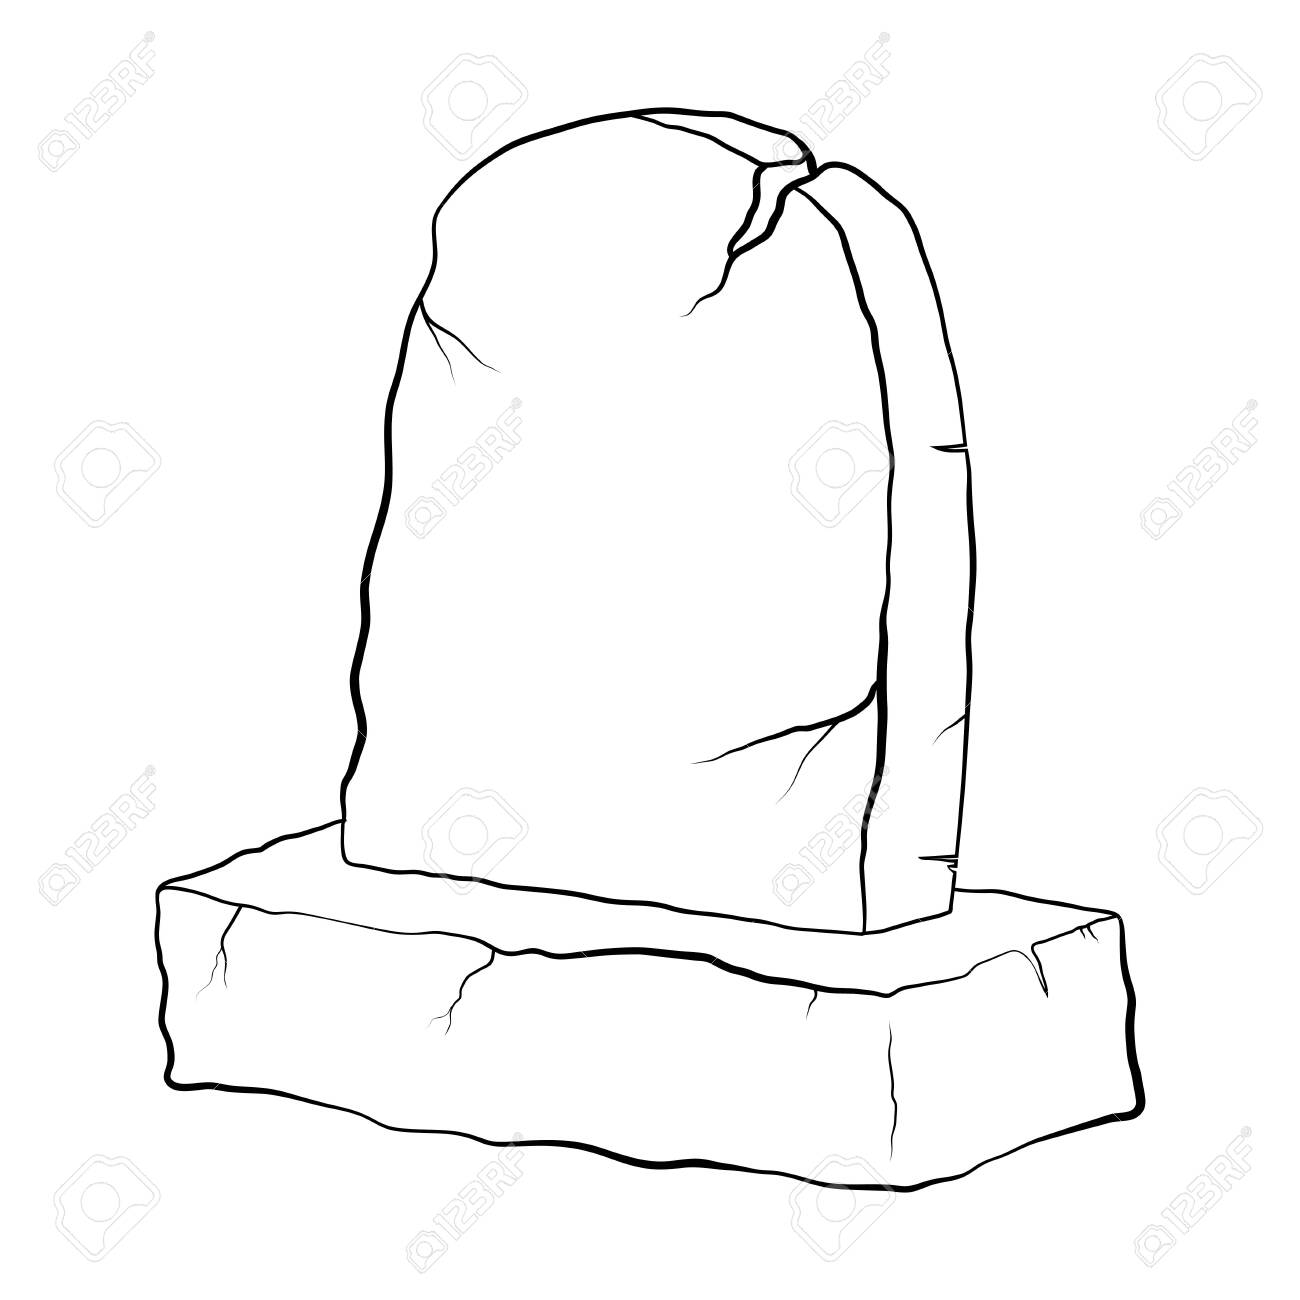 Grave Outline Cartoon Design With Cracks For Halloween Coloring Royalty Free Cliparts Vectors And Stock Illustration Image 136107958